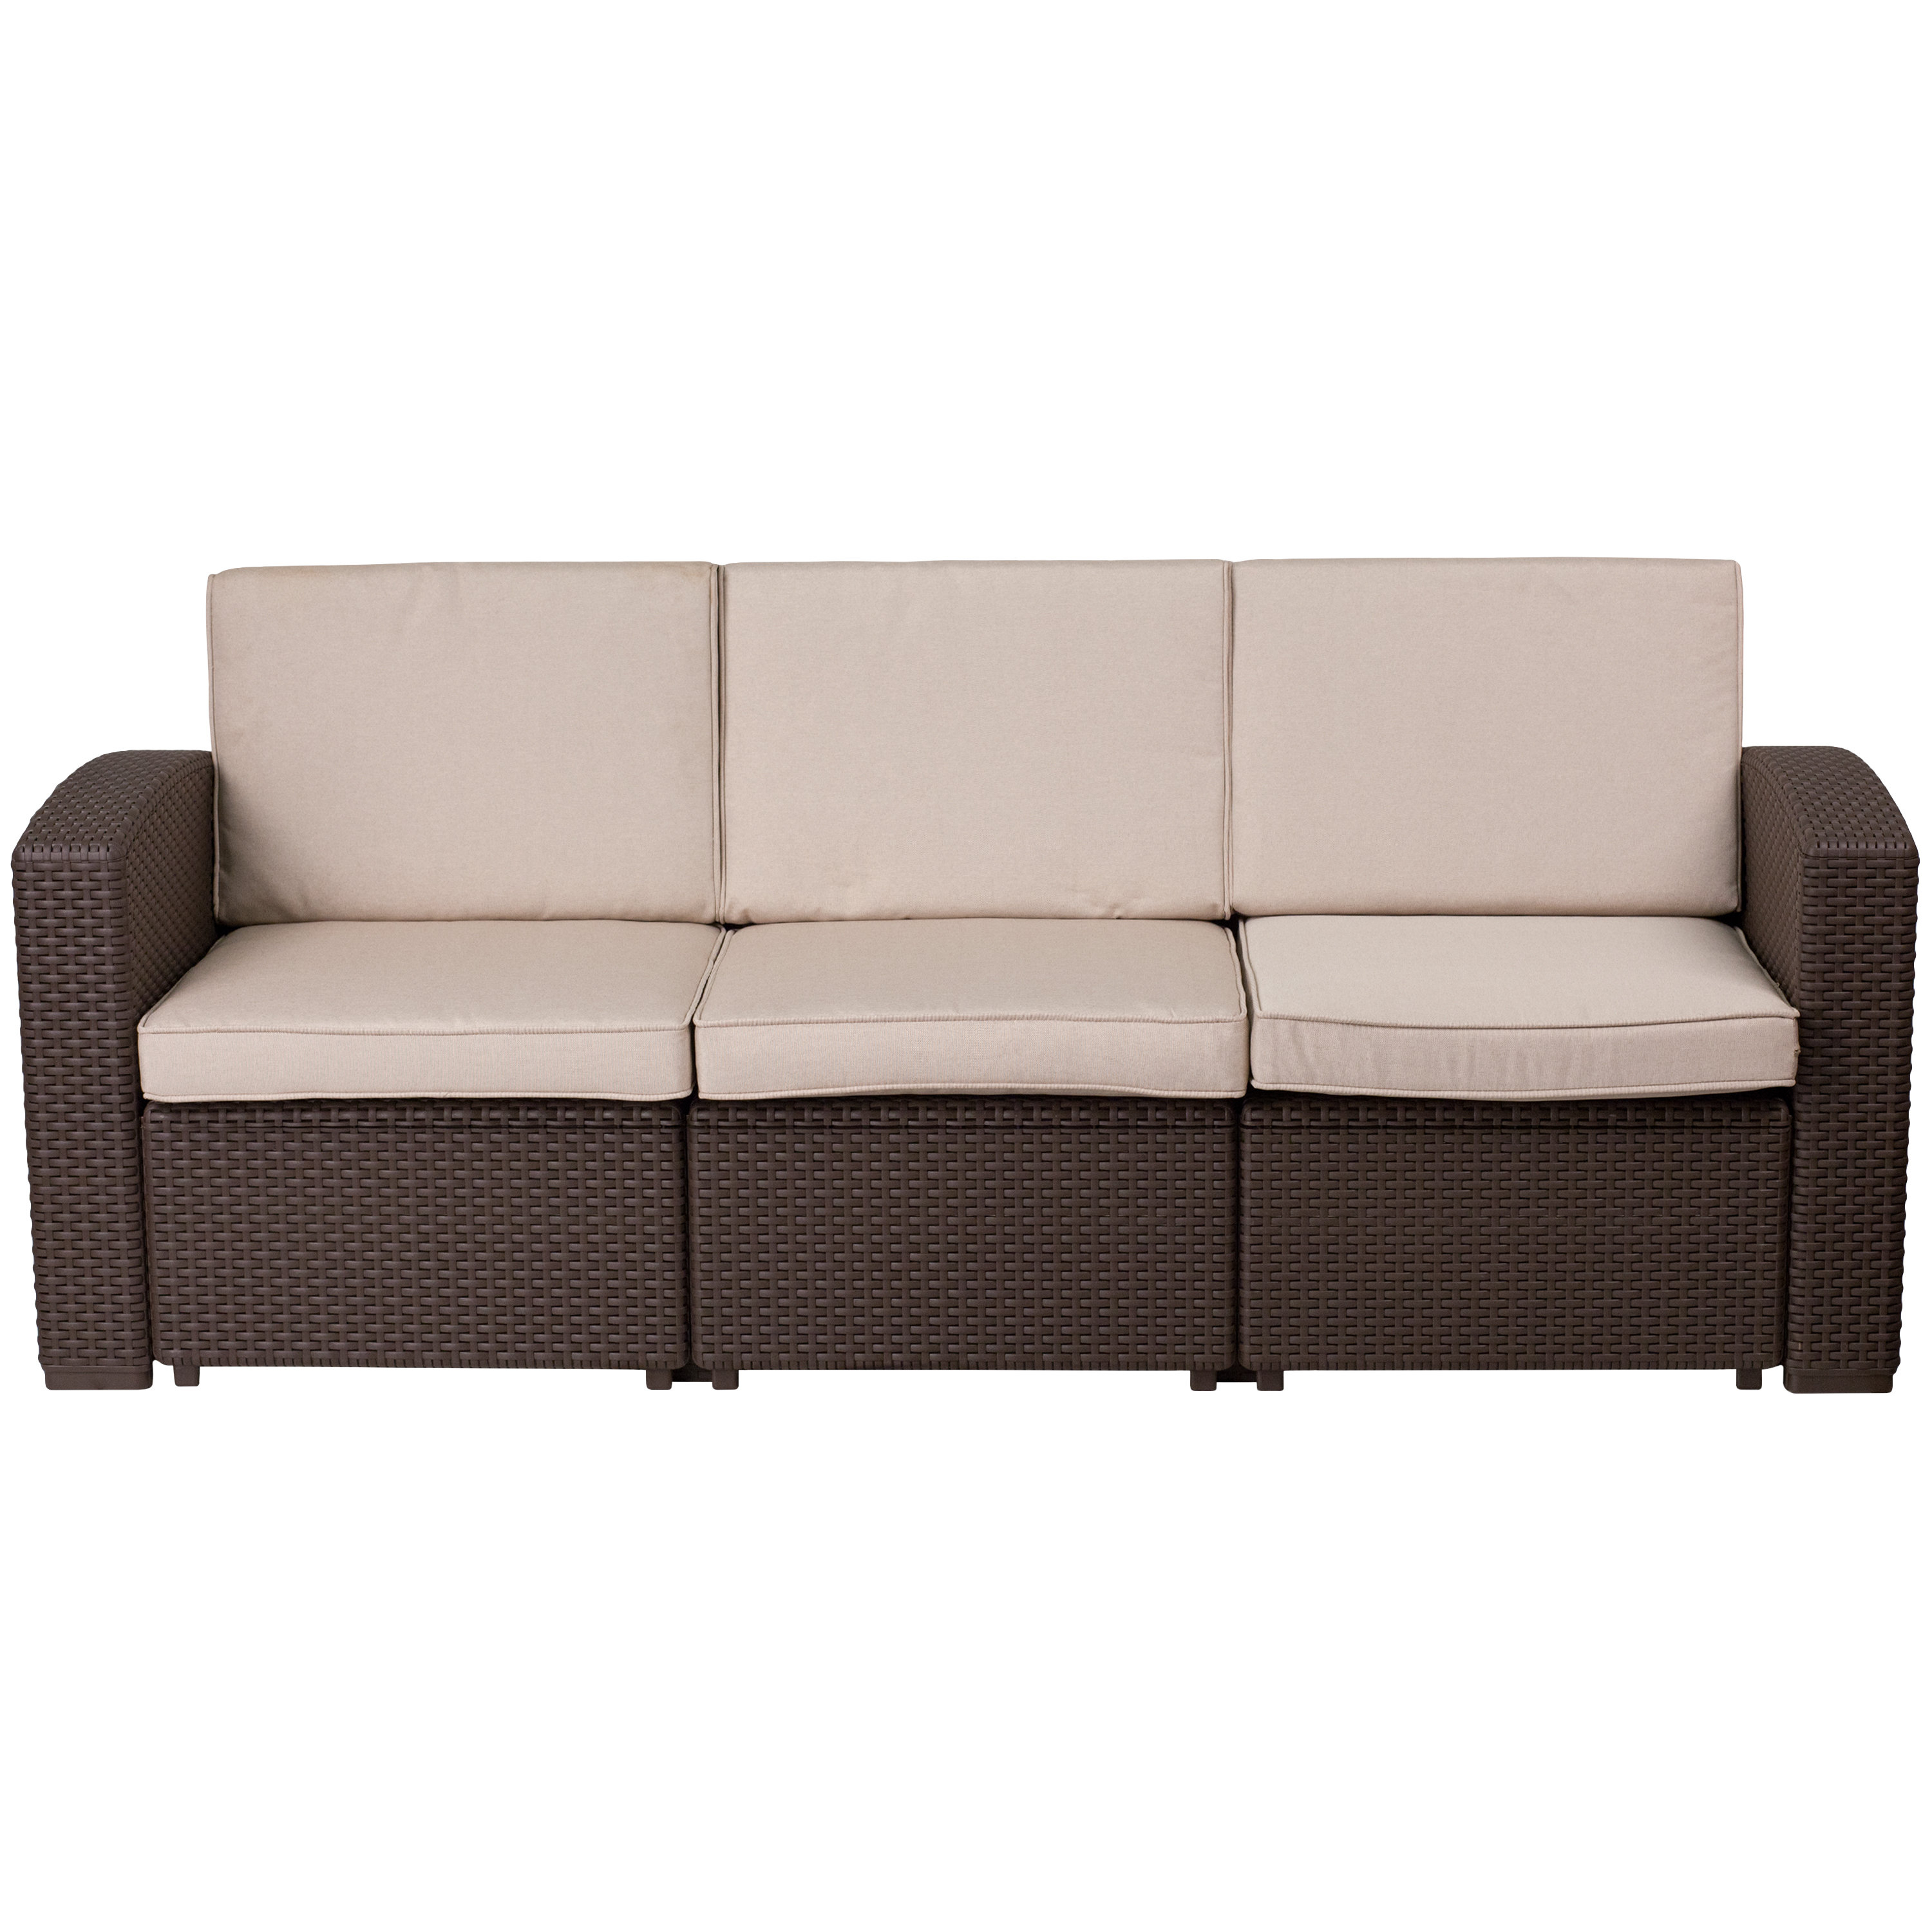 Most Current Breakwater Bay Clifford Patio Sofa With Cushions & Reviews In Yoselin Patio Sofas With Cushions (View 10 of 20)